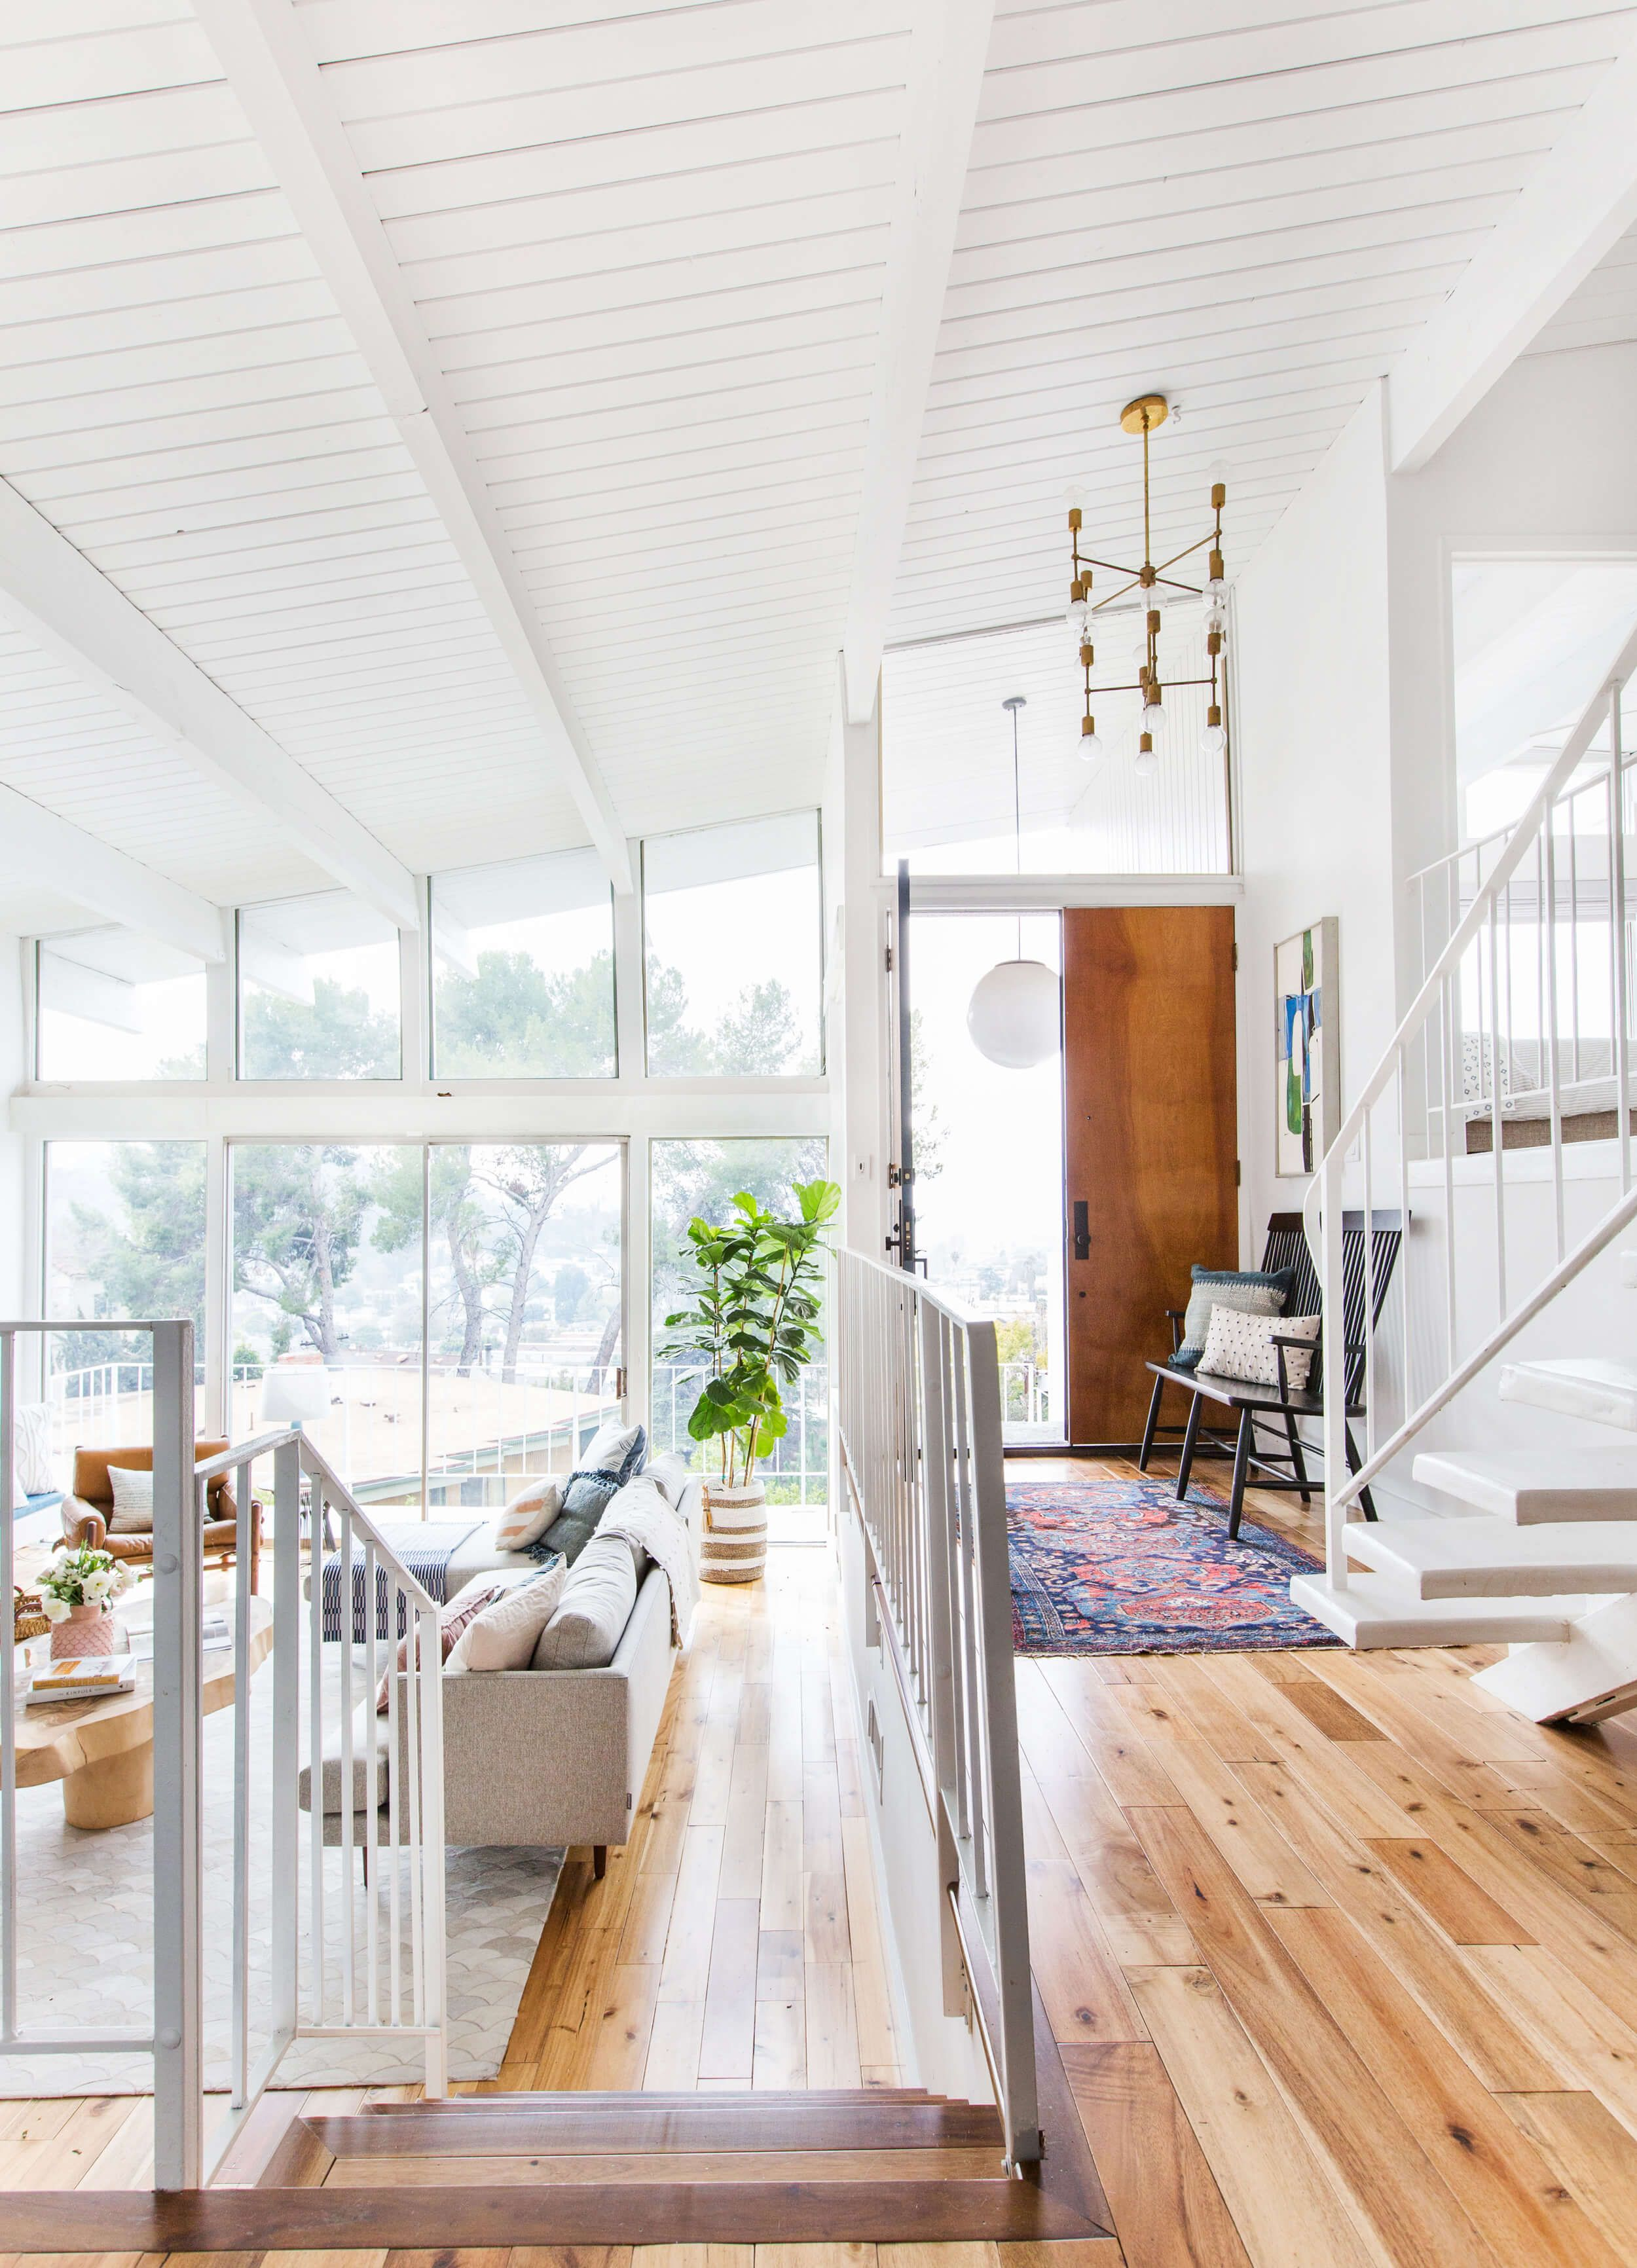 How to Add Character to Basic Architecture: Ceiling Paneling ...